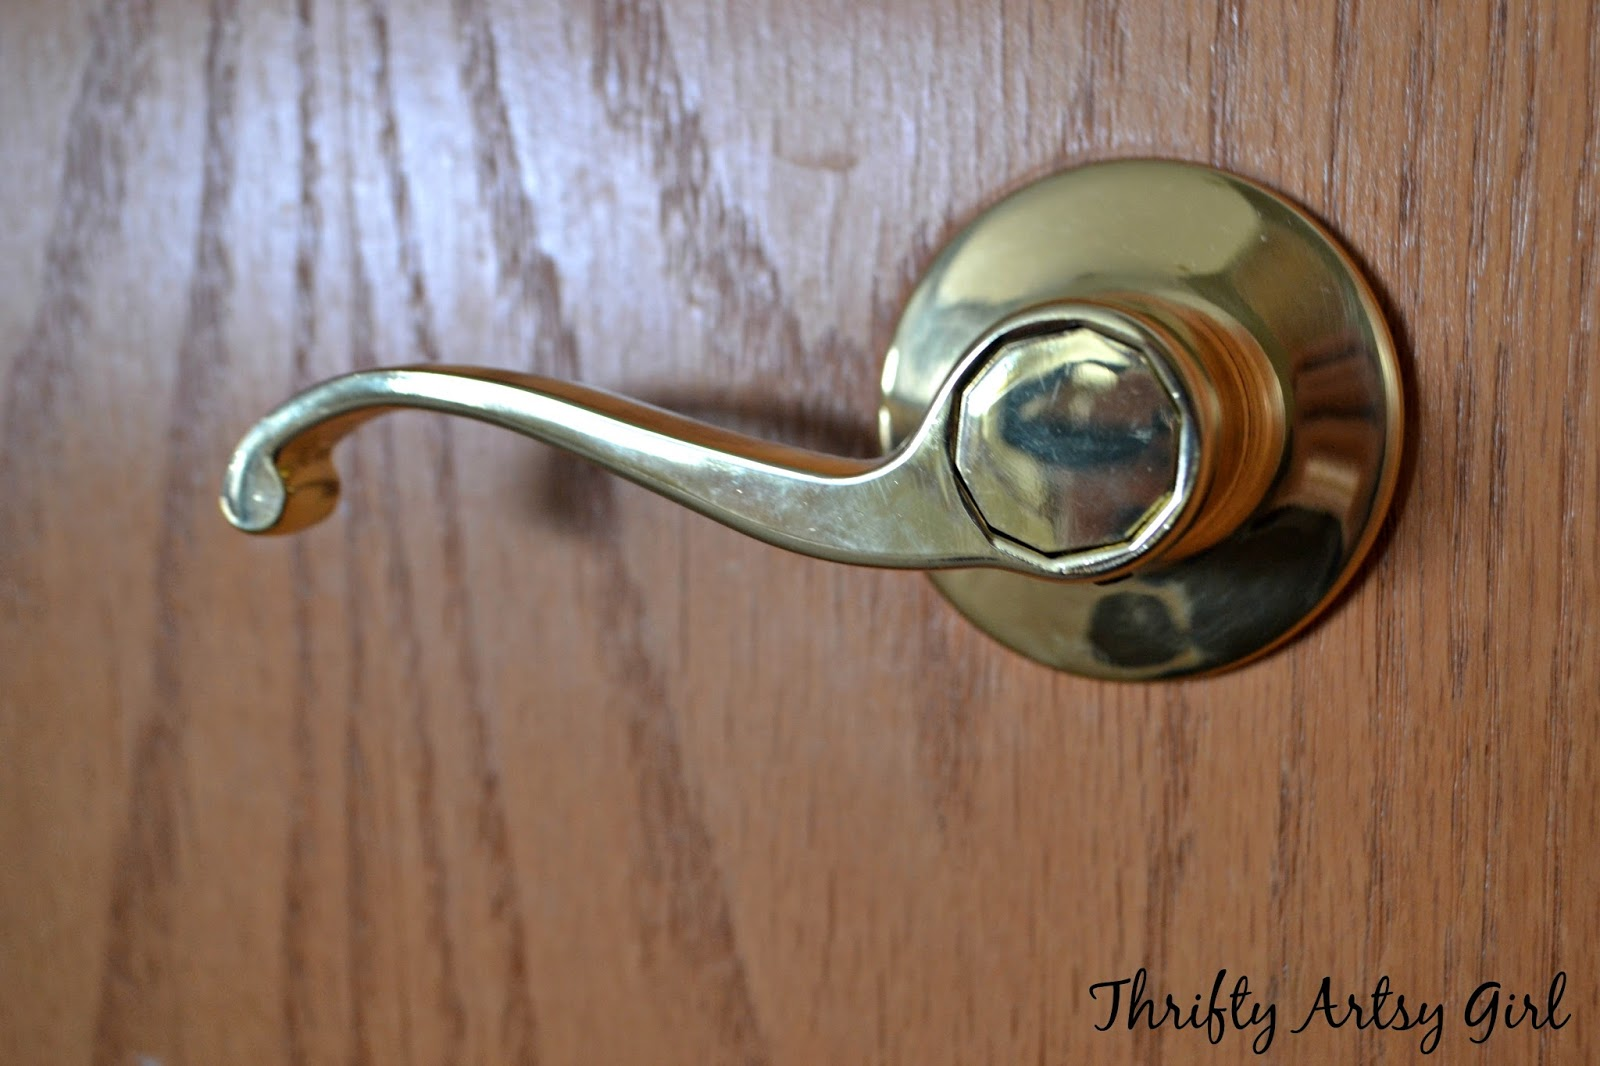 Etonnant Thrifty Artsy Girl: DIY Spray Painted Doorknobs: From Cheap Brass To  Expensive Oil Rubbed Bronze